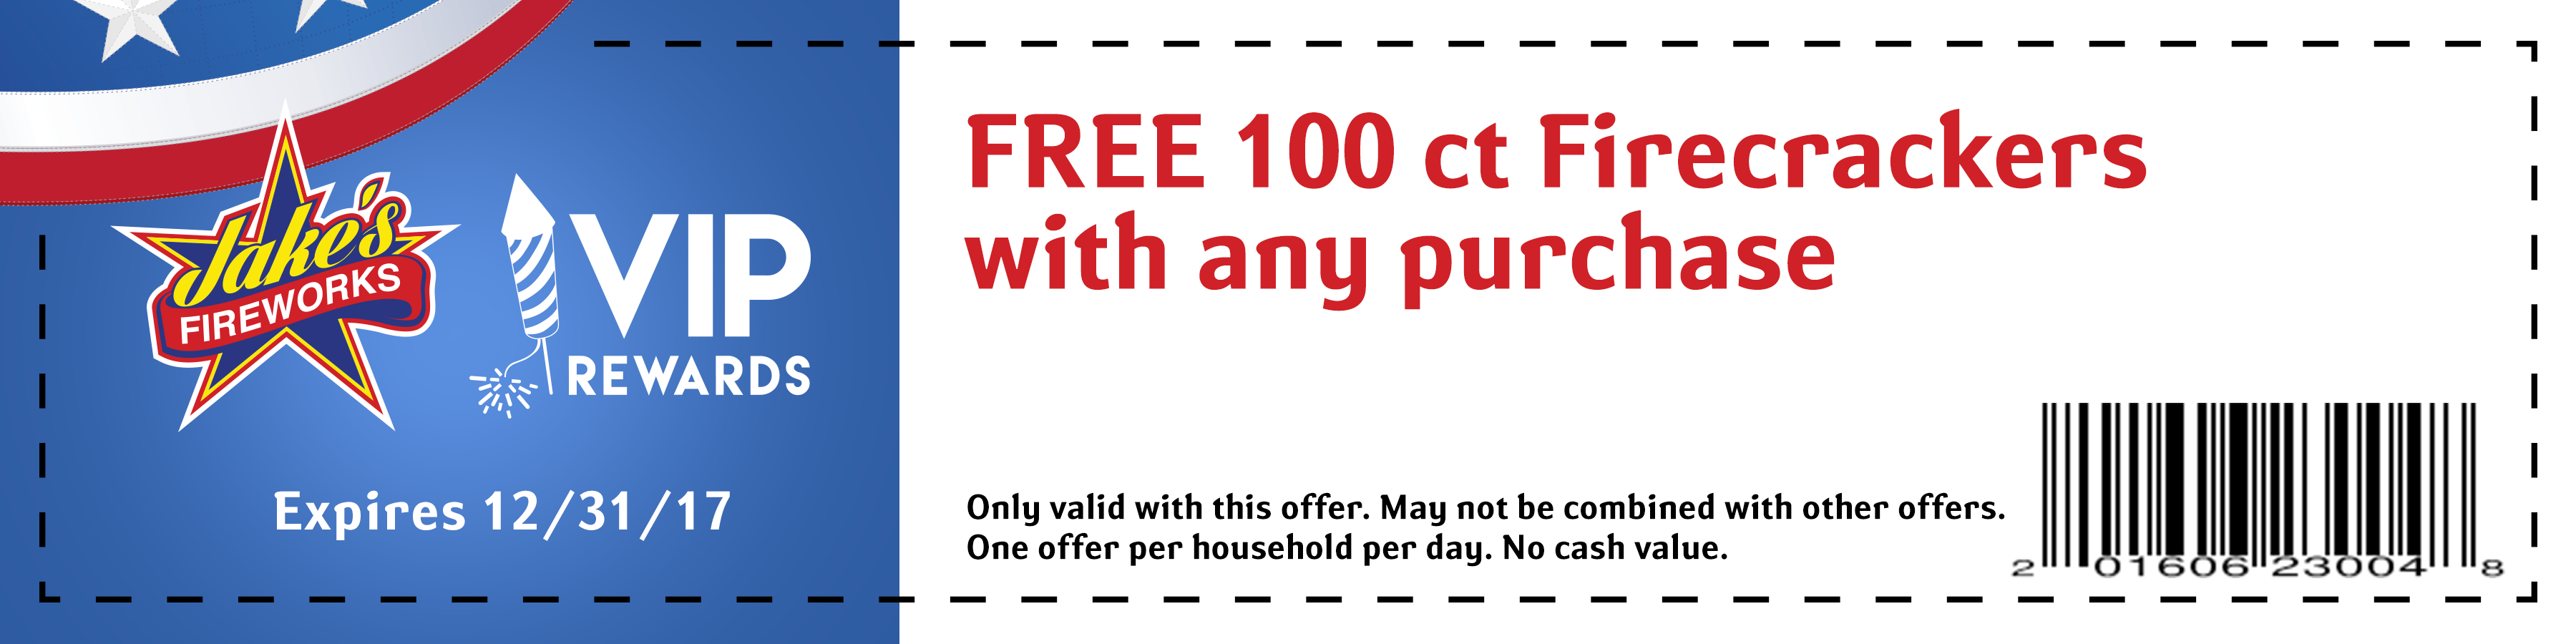 free firecrackers coupon